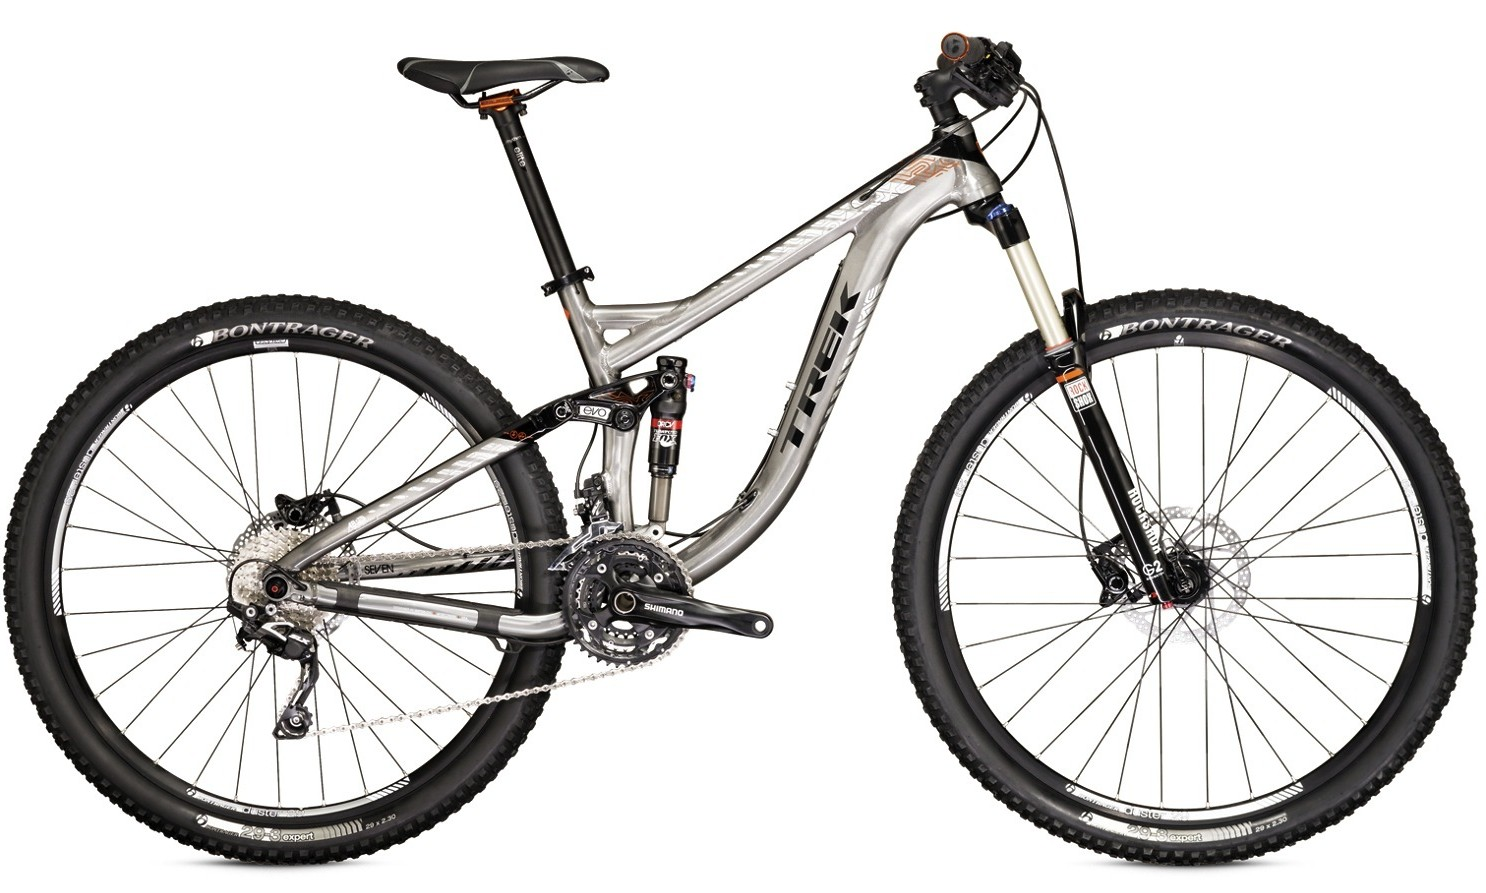 2014 Trek Remedy 7 29 Bike - Reviews, Comparisons, Specs ...